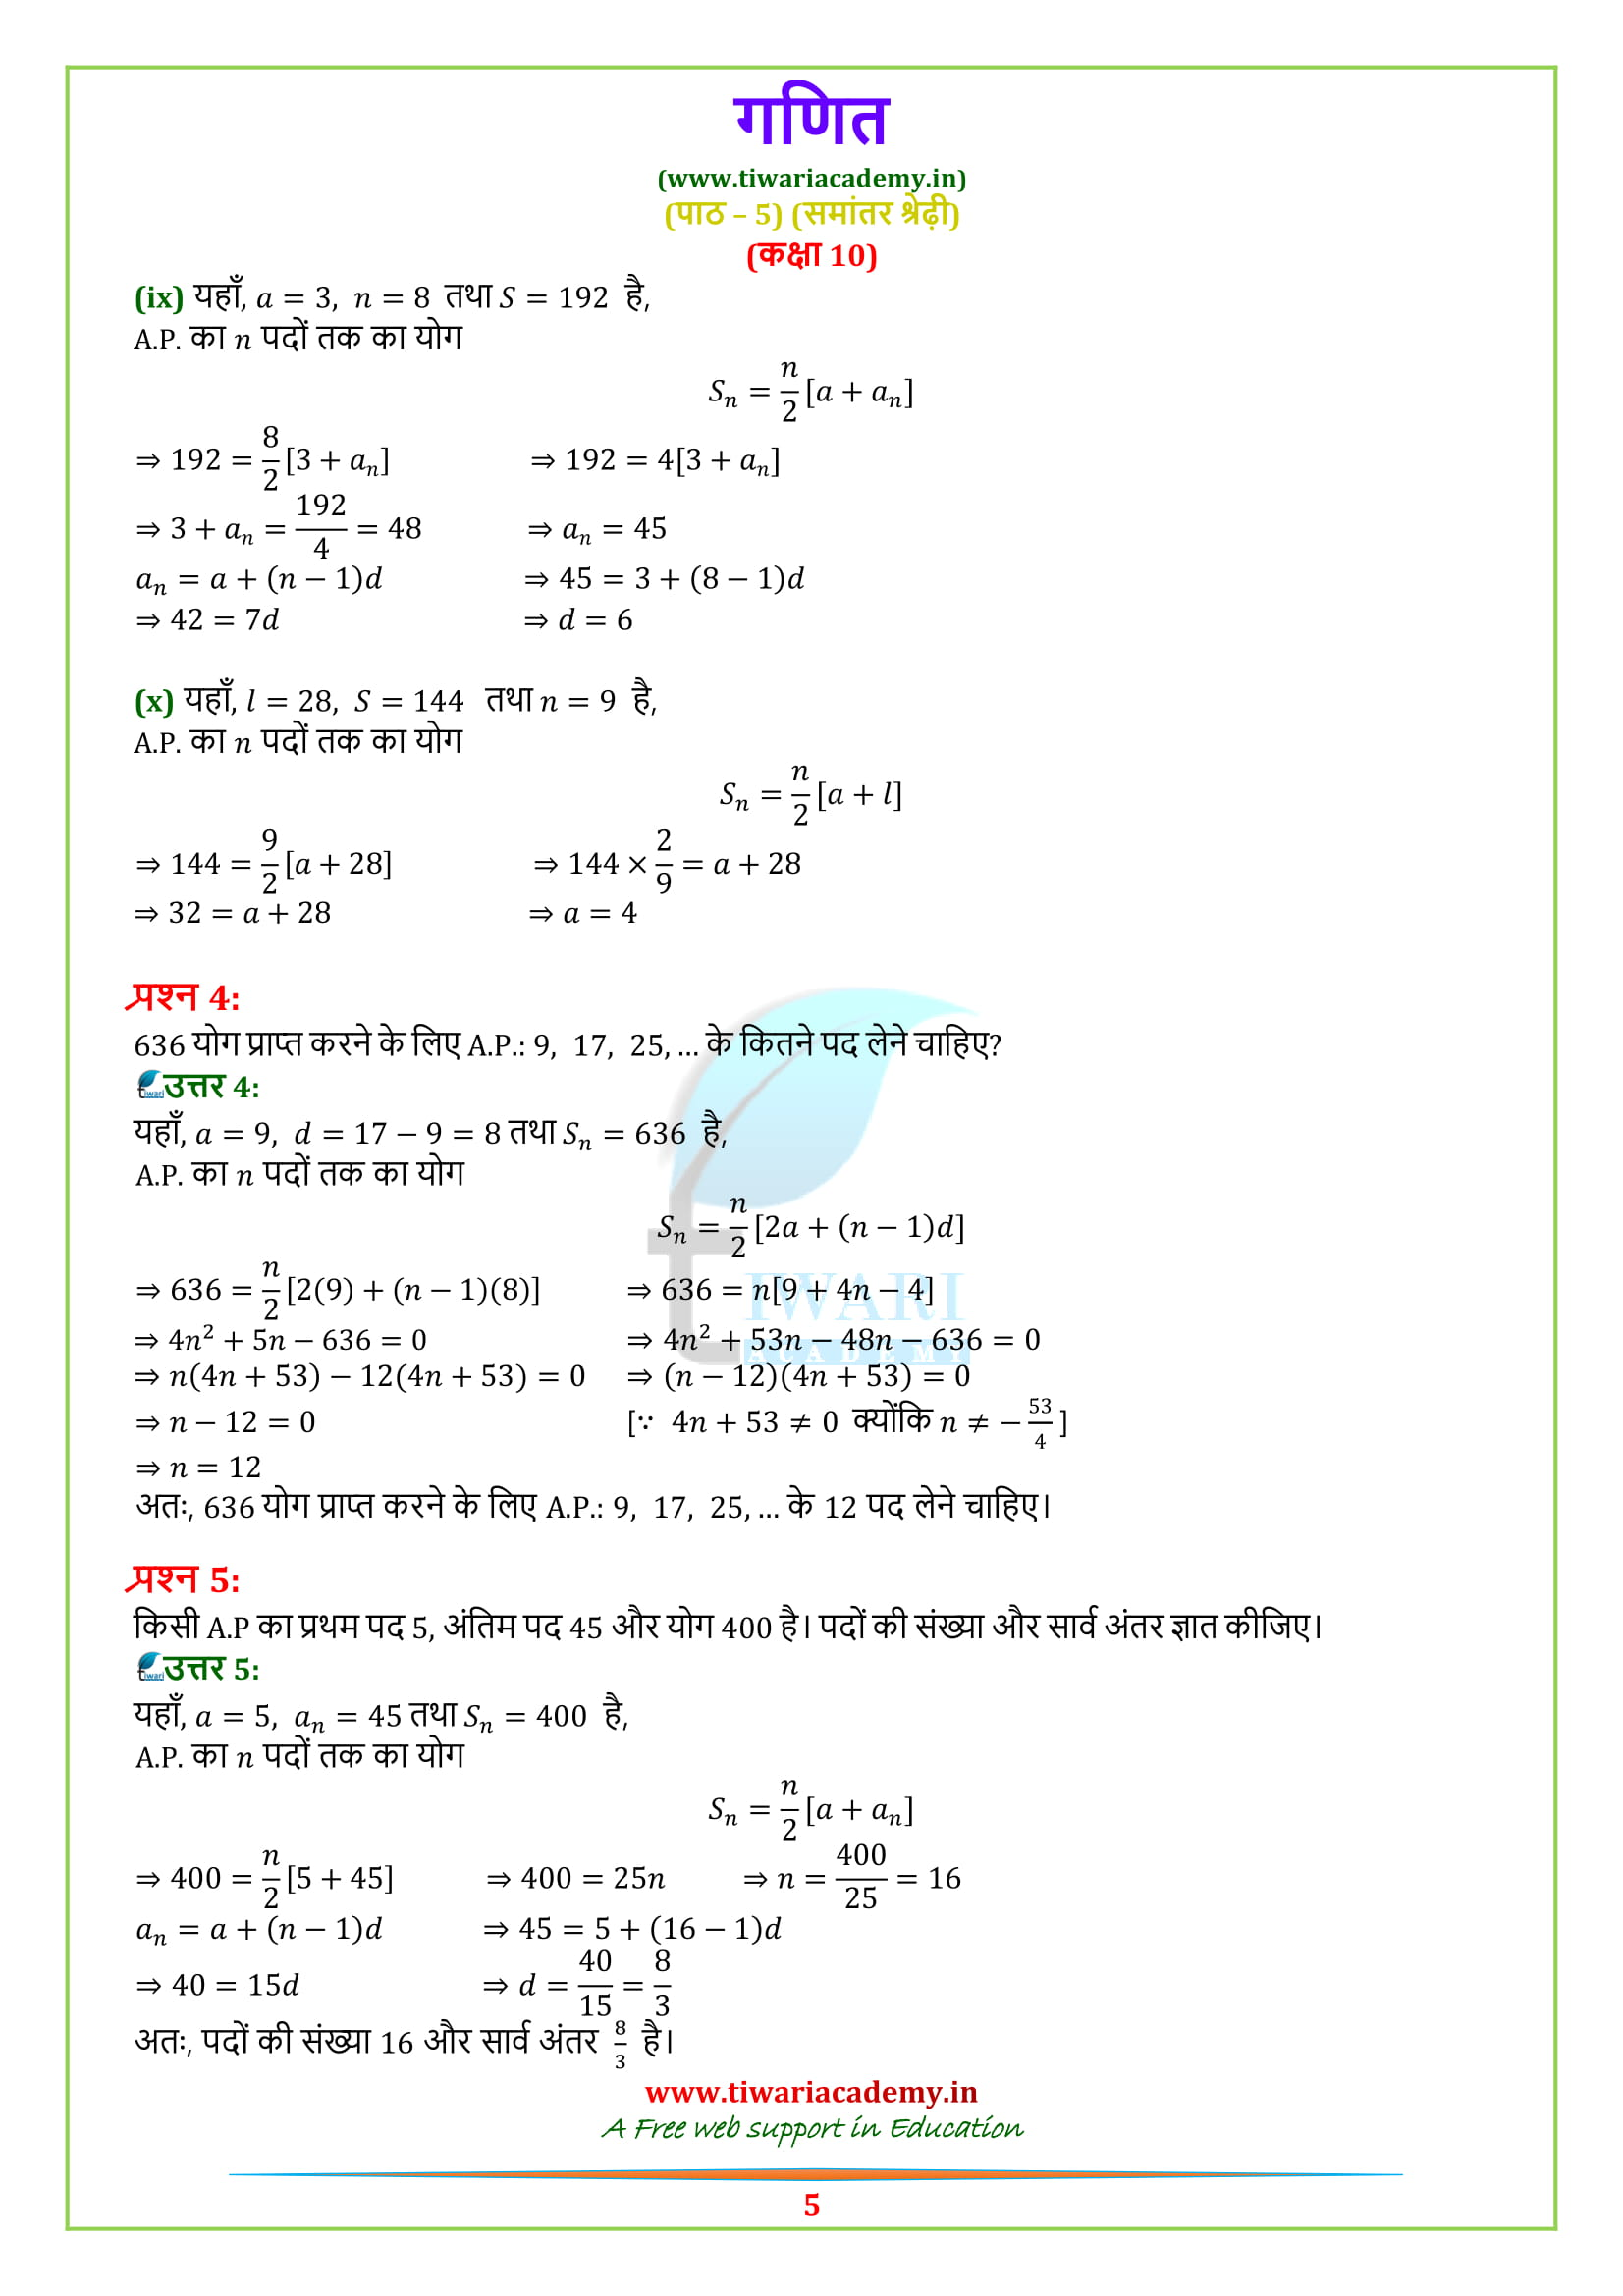 NCERT Solutions for Class 10 Maths Exercise 5.3 updated for up and mp board